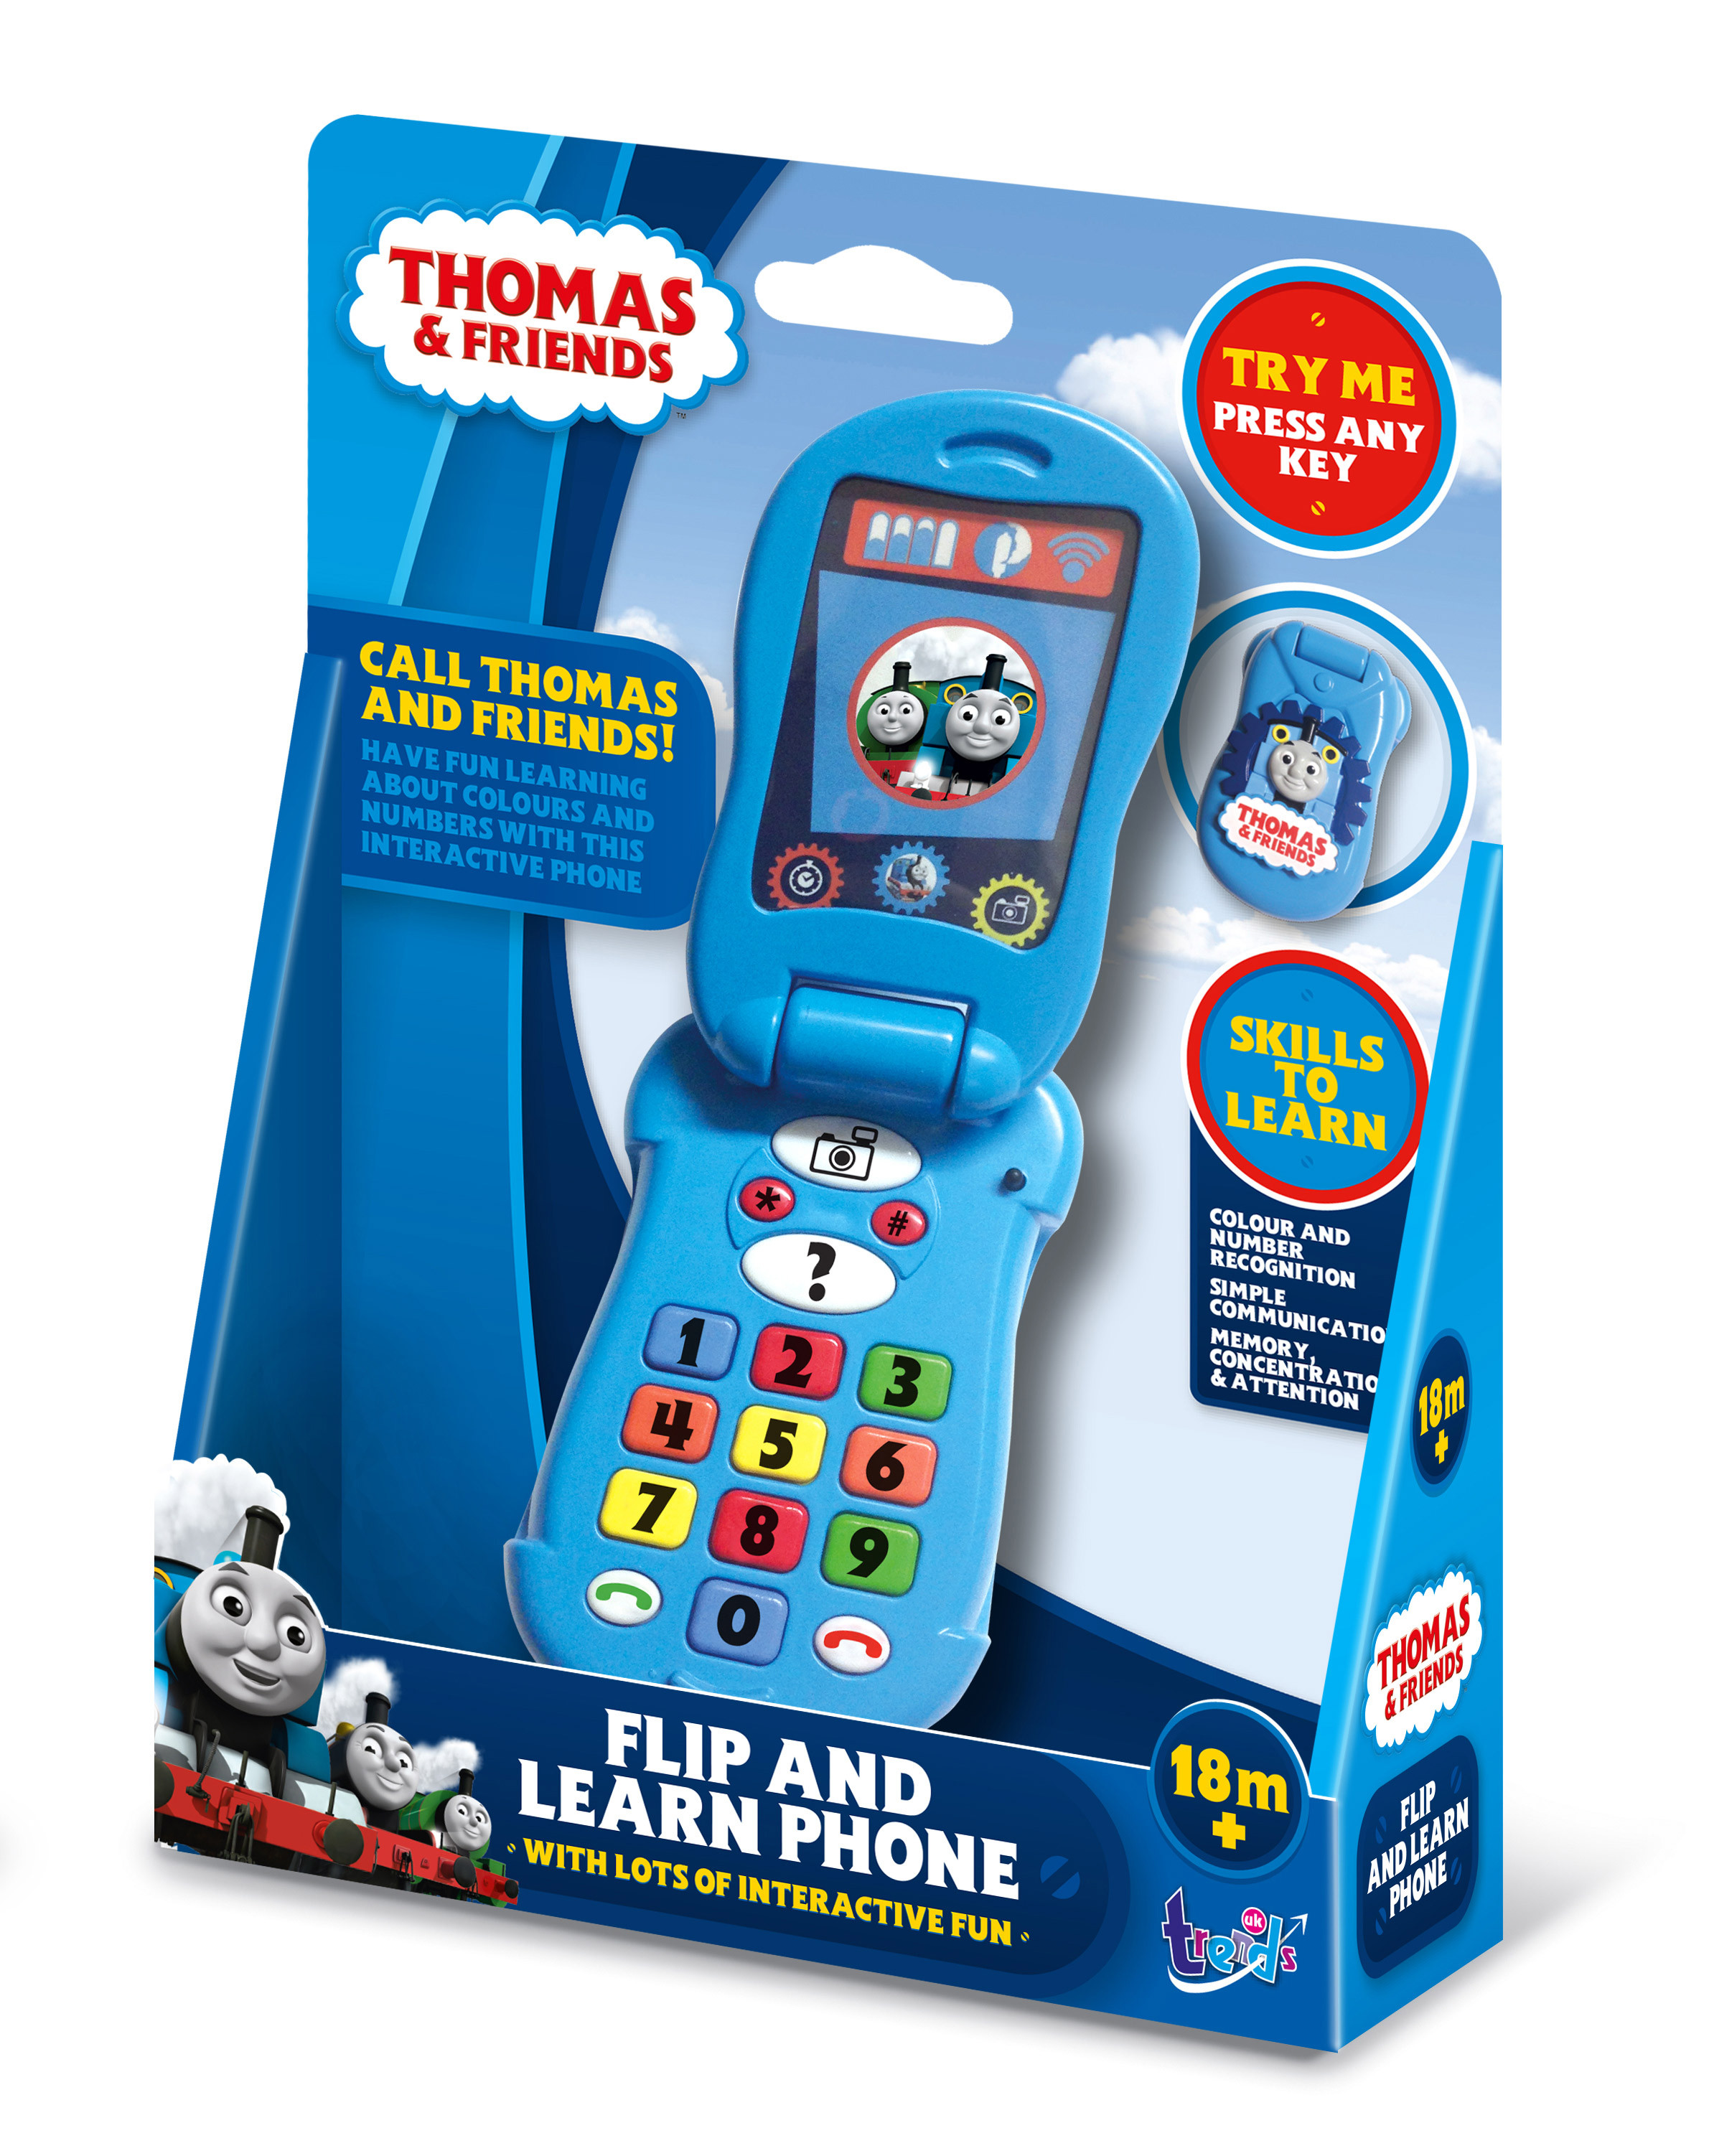 Thomas Amp Friends Flip Amp Learn Phone Wind Designs